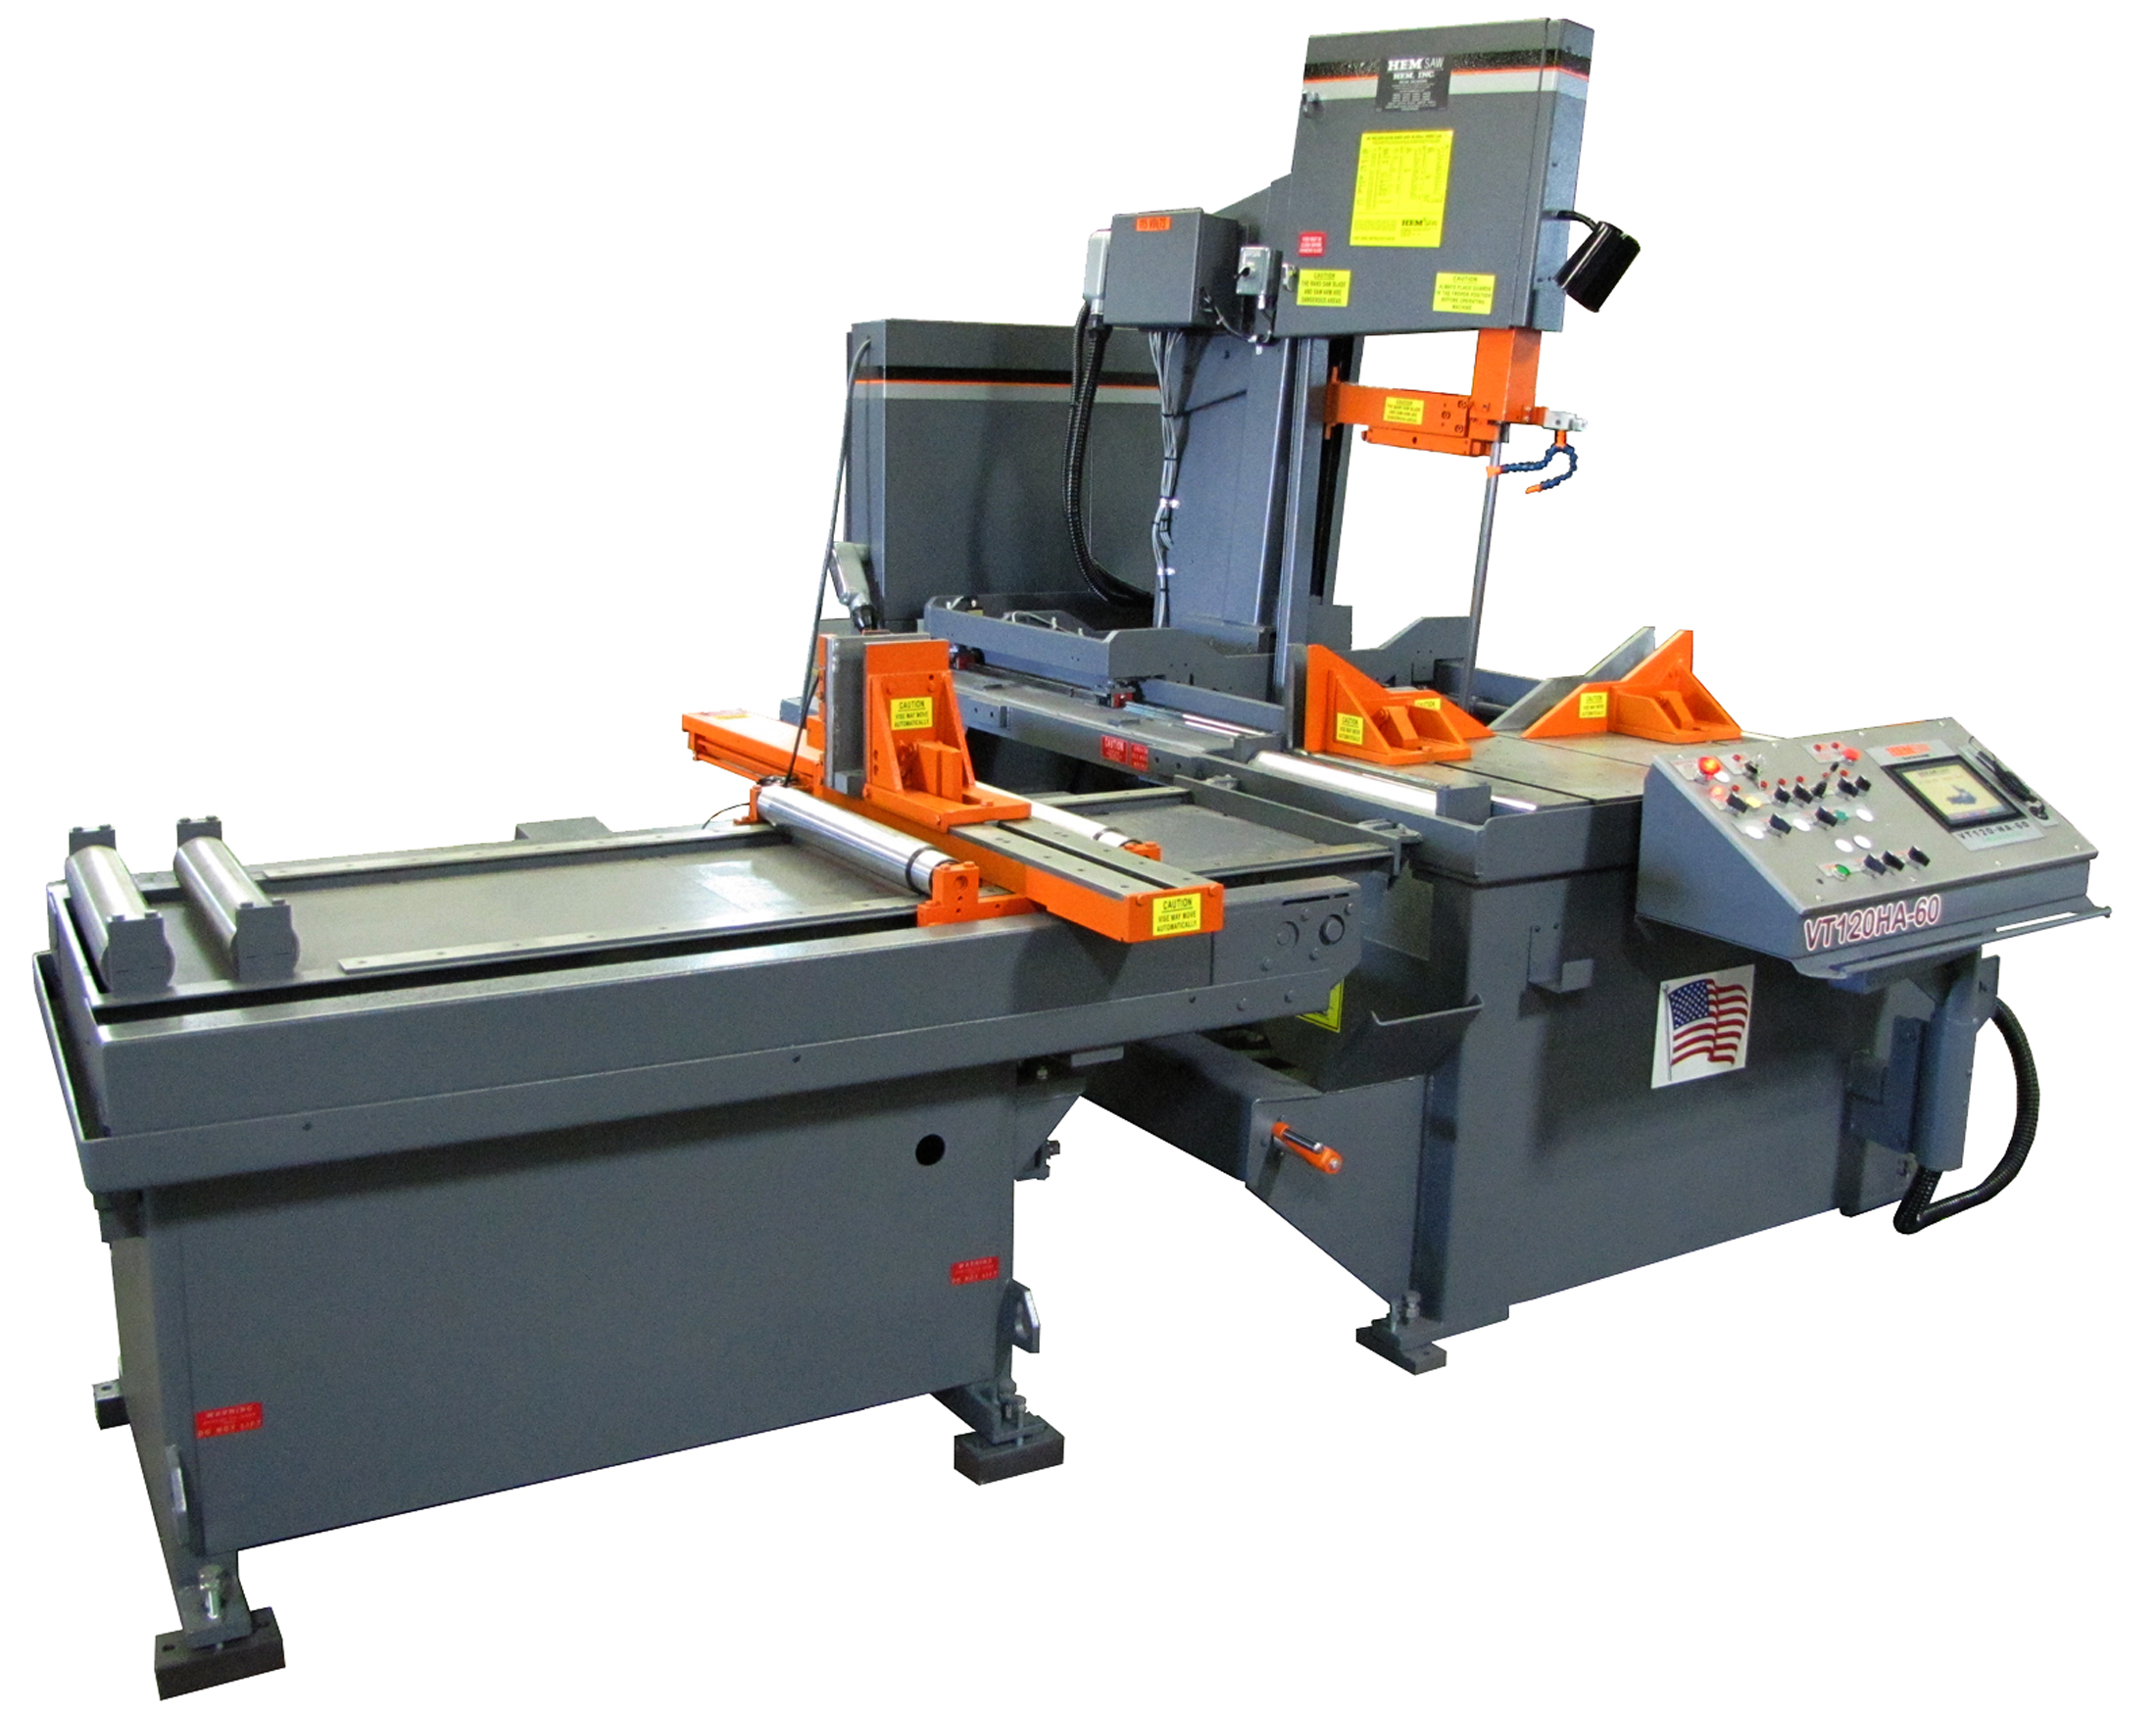 The VT120HA-60-TS automatic vertical bandsaw from HE&M Saw uses advanced flat panel touch screen controls. The saw has a cutting capacity of 18 in x 24 in H at 90 deg, 16 in H at 45 deg (left miter)/14.75 in H at 45 deg (right miter) and 10 in H at 60 deg (left miter)/9 in H at 60 deg (right miter). The saw uses a 1¼ in blade with an arm cant of 4 deg powered by a 7.5 hp motor and a 5 hp hydraulic system.(Click on photo to enlarge it)